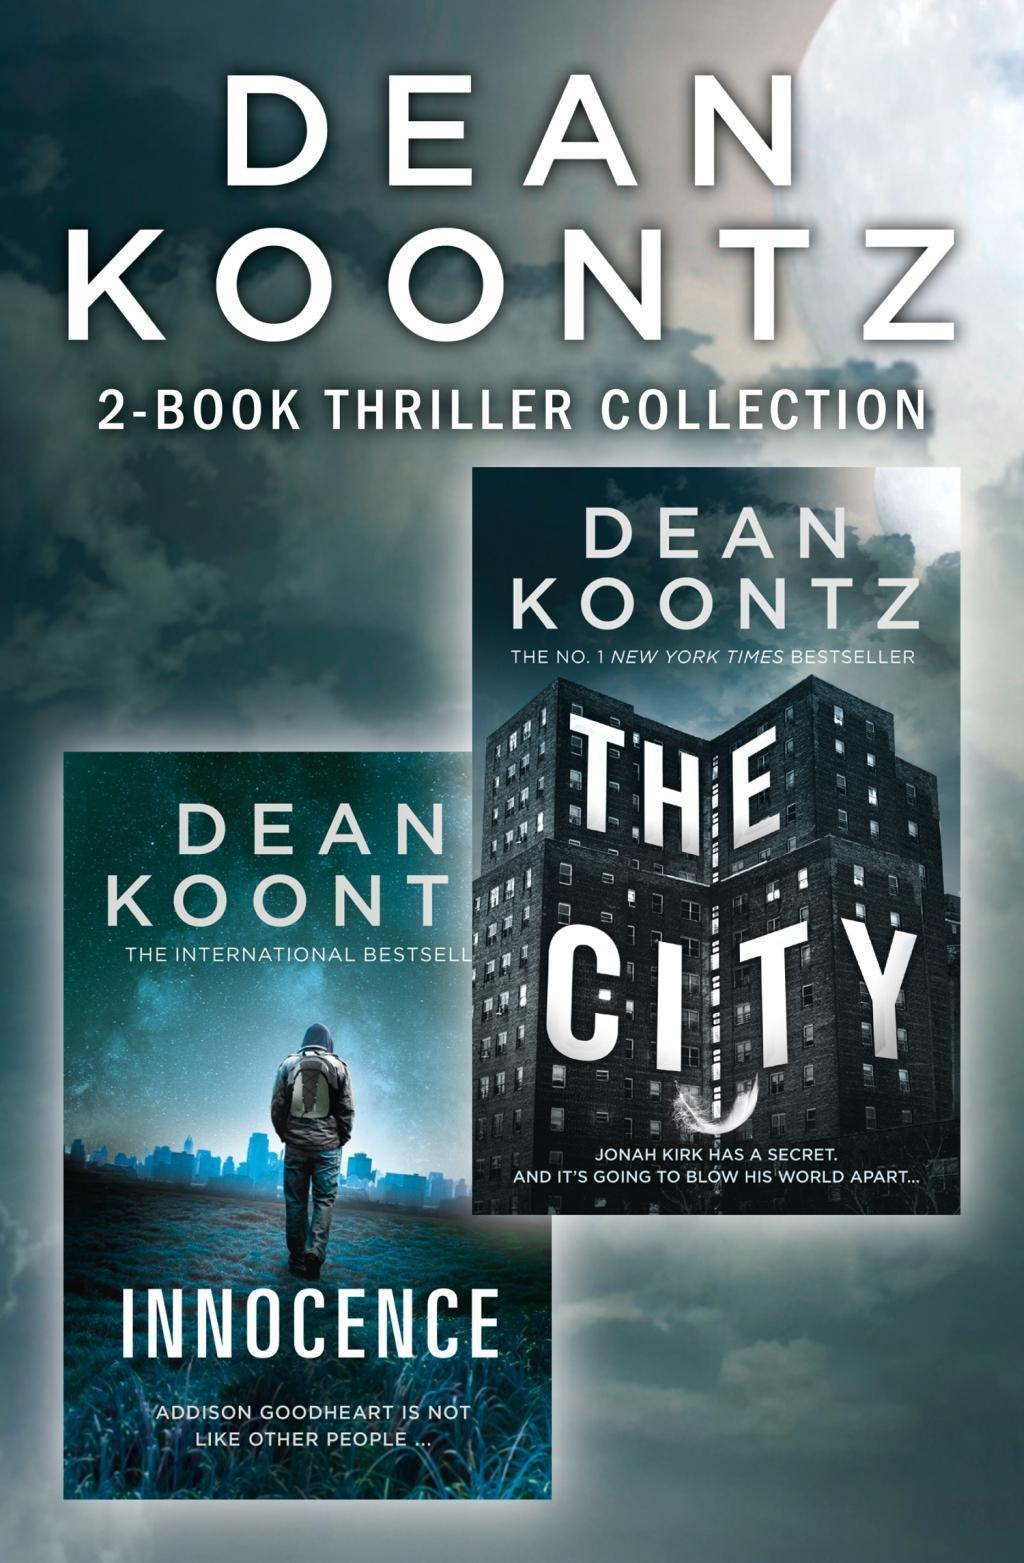 Dean Koontz 2-Book Thriller Collection: Innocence, The City